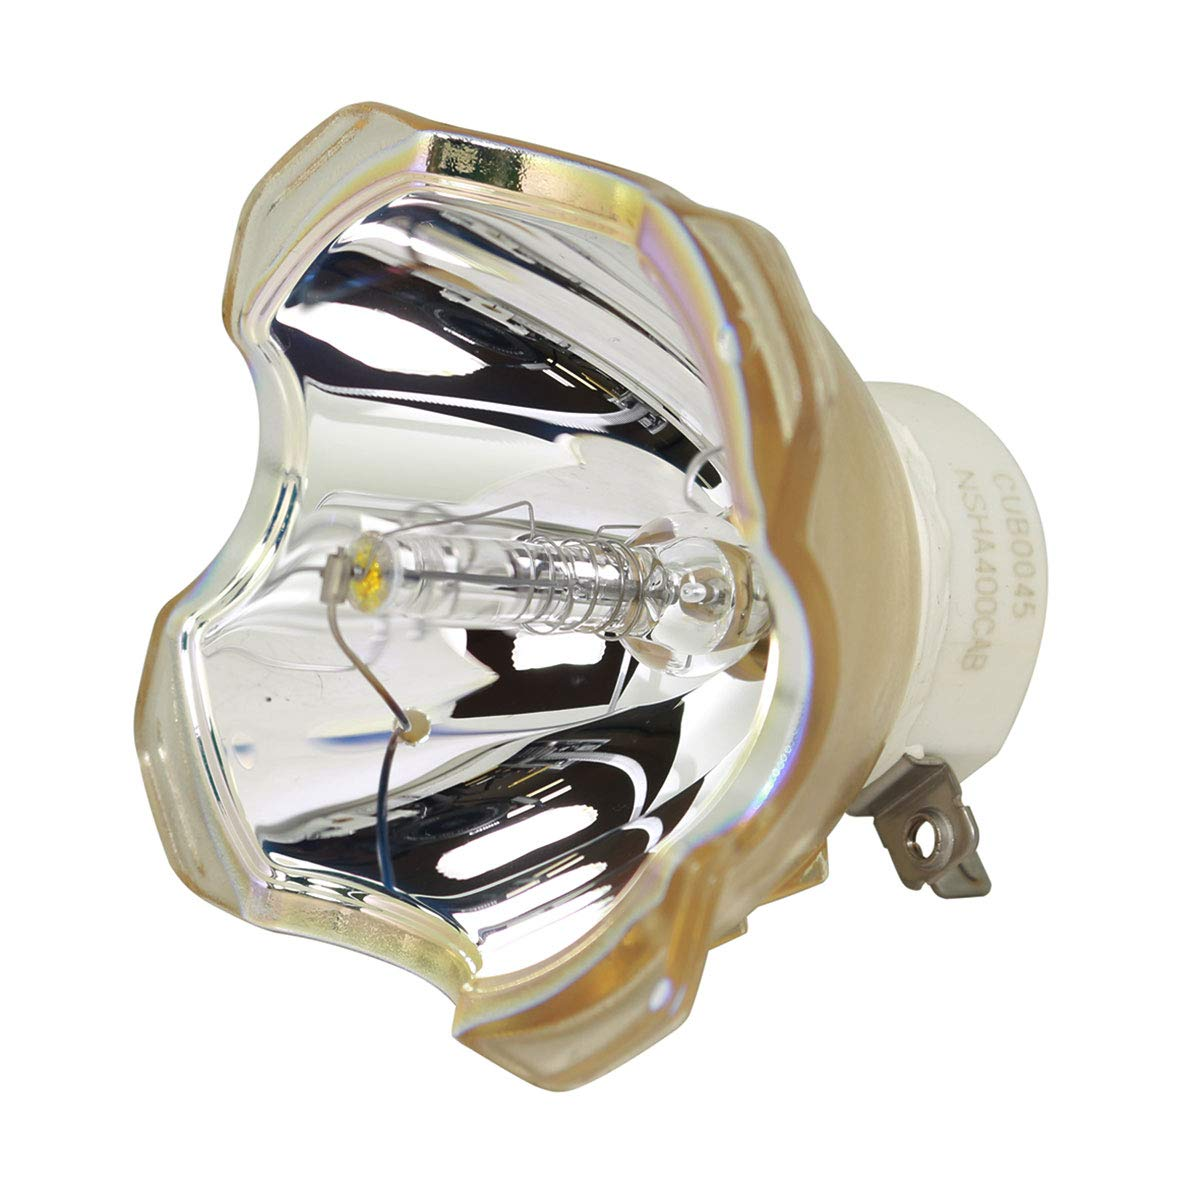 Lutema Platinum for Sony LMP-F370 Projector Lamp Bulb Only